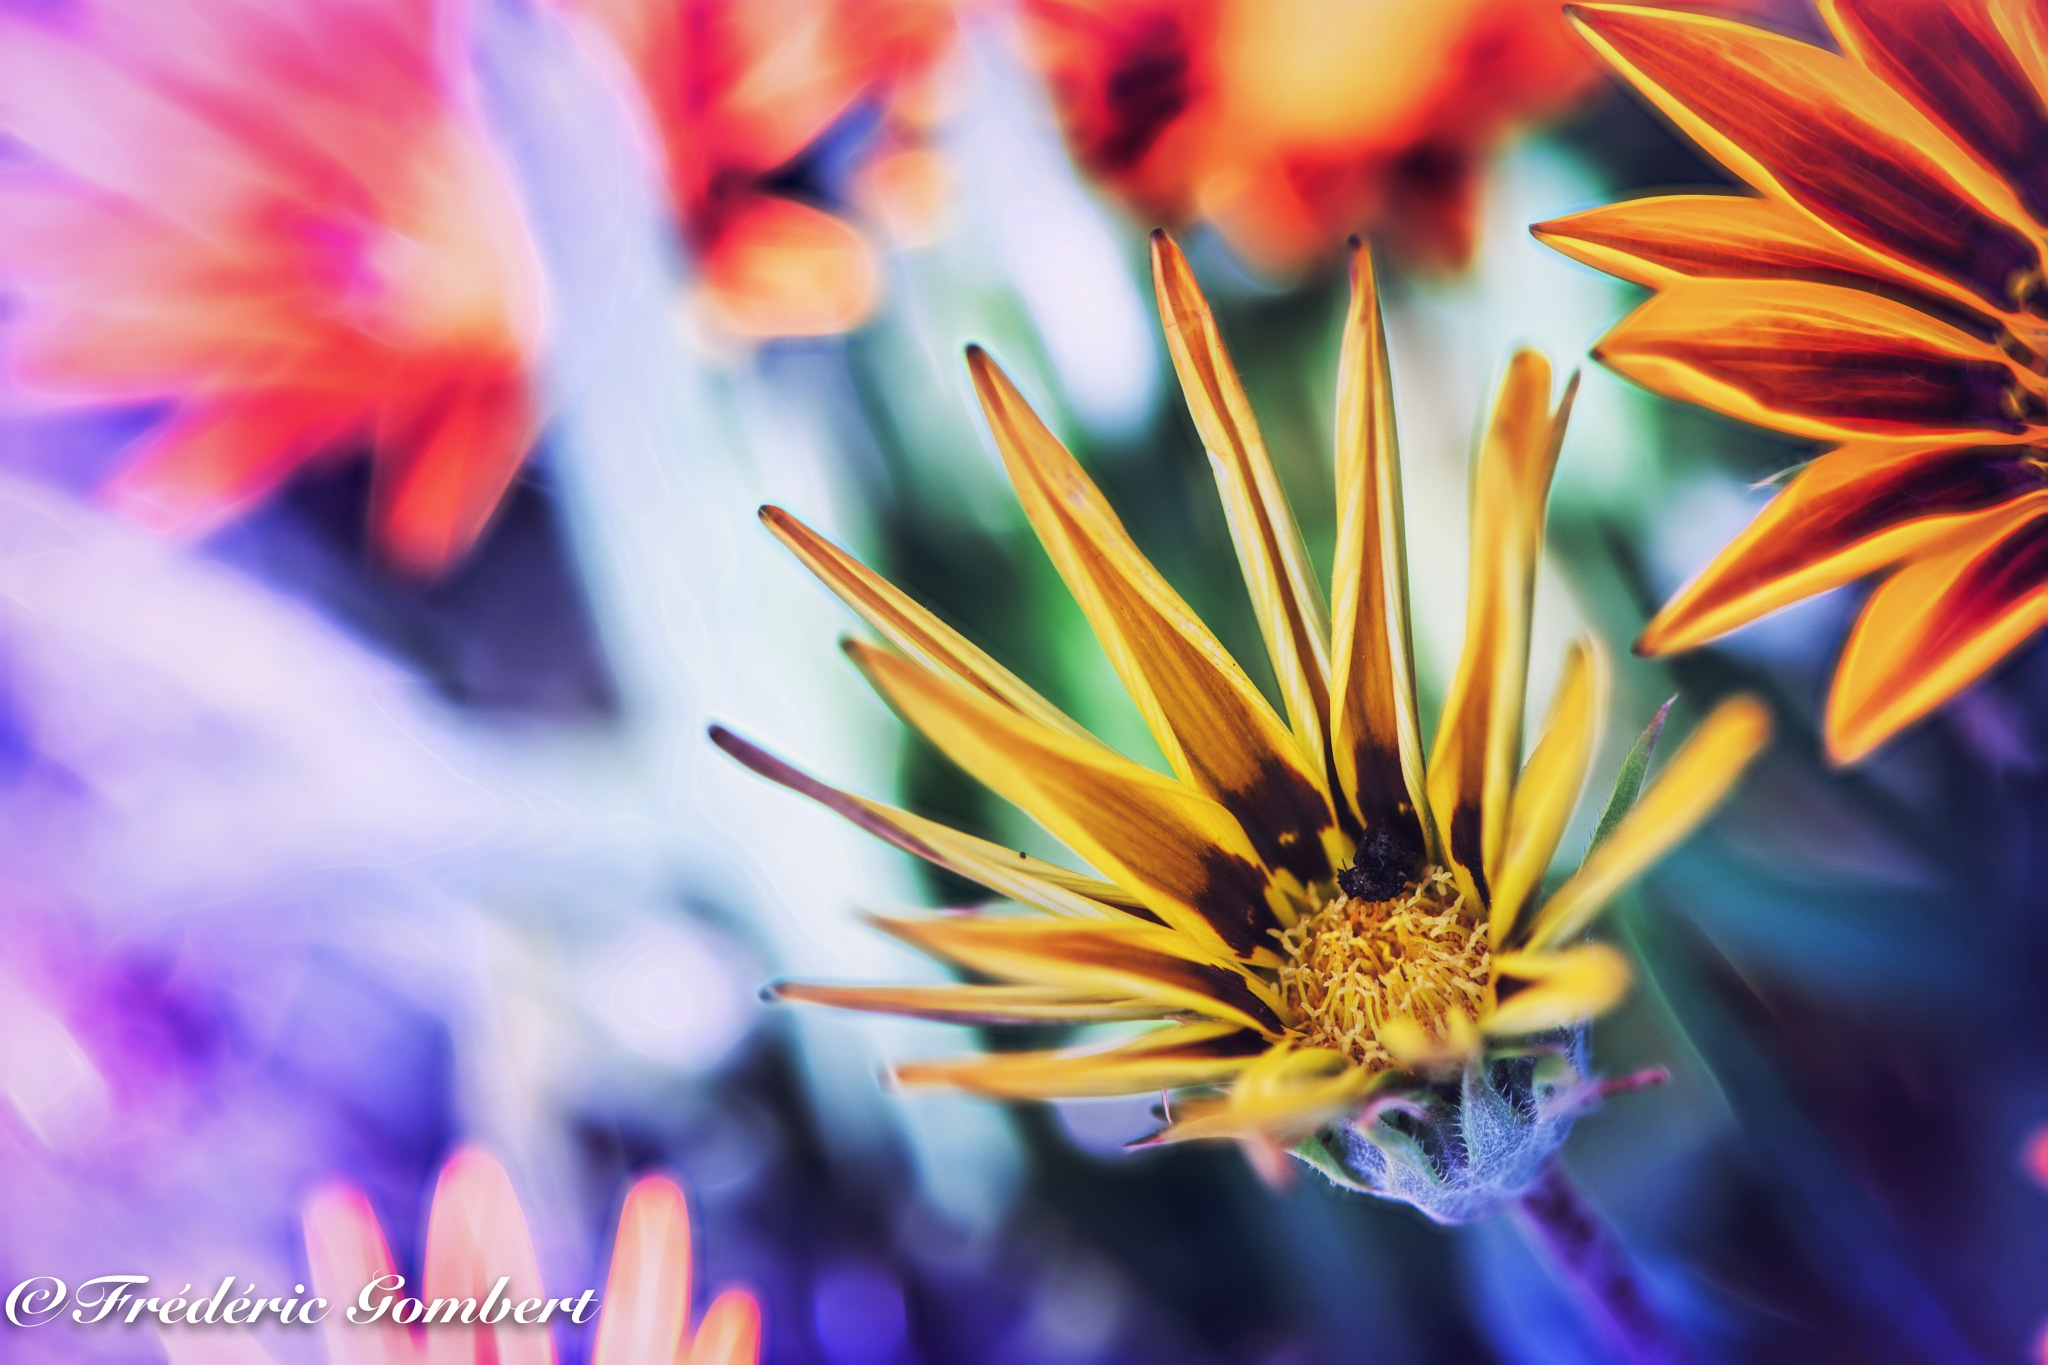 Looking for the Light by Frederic Gombert